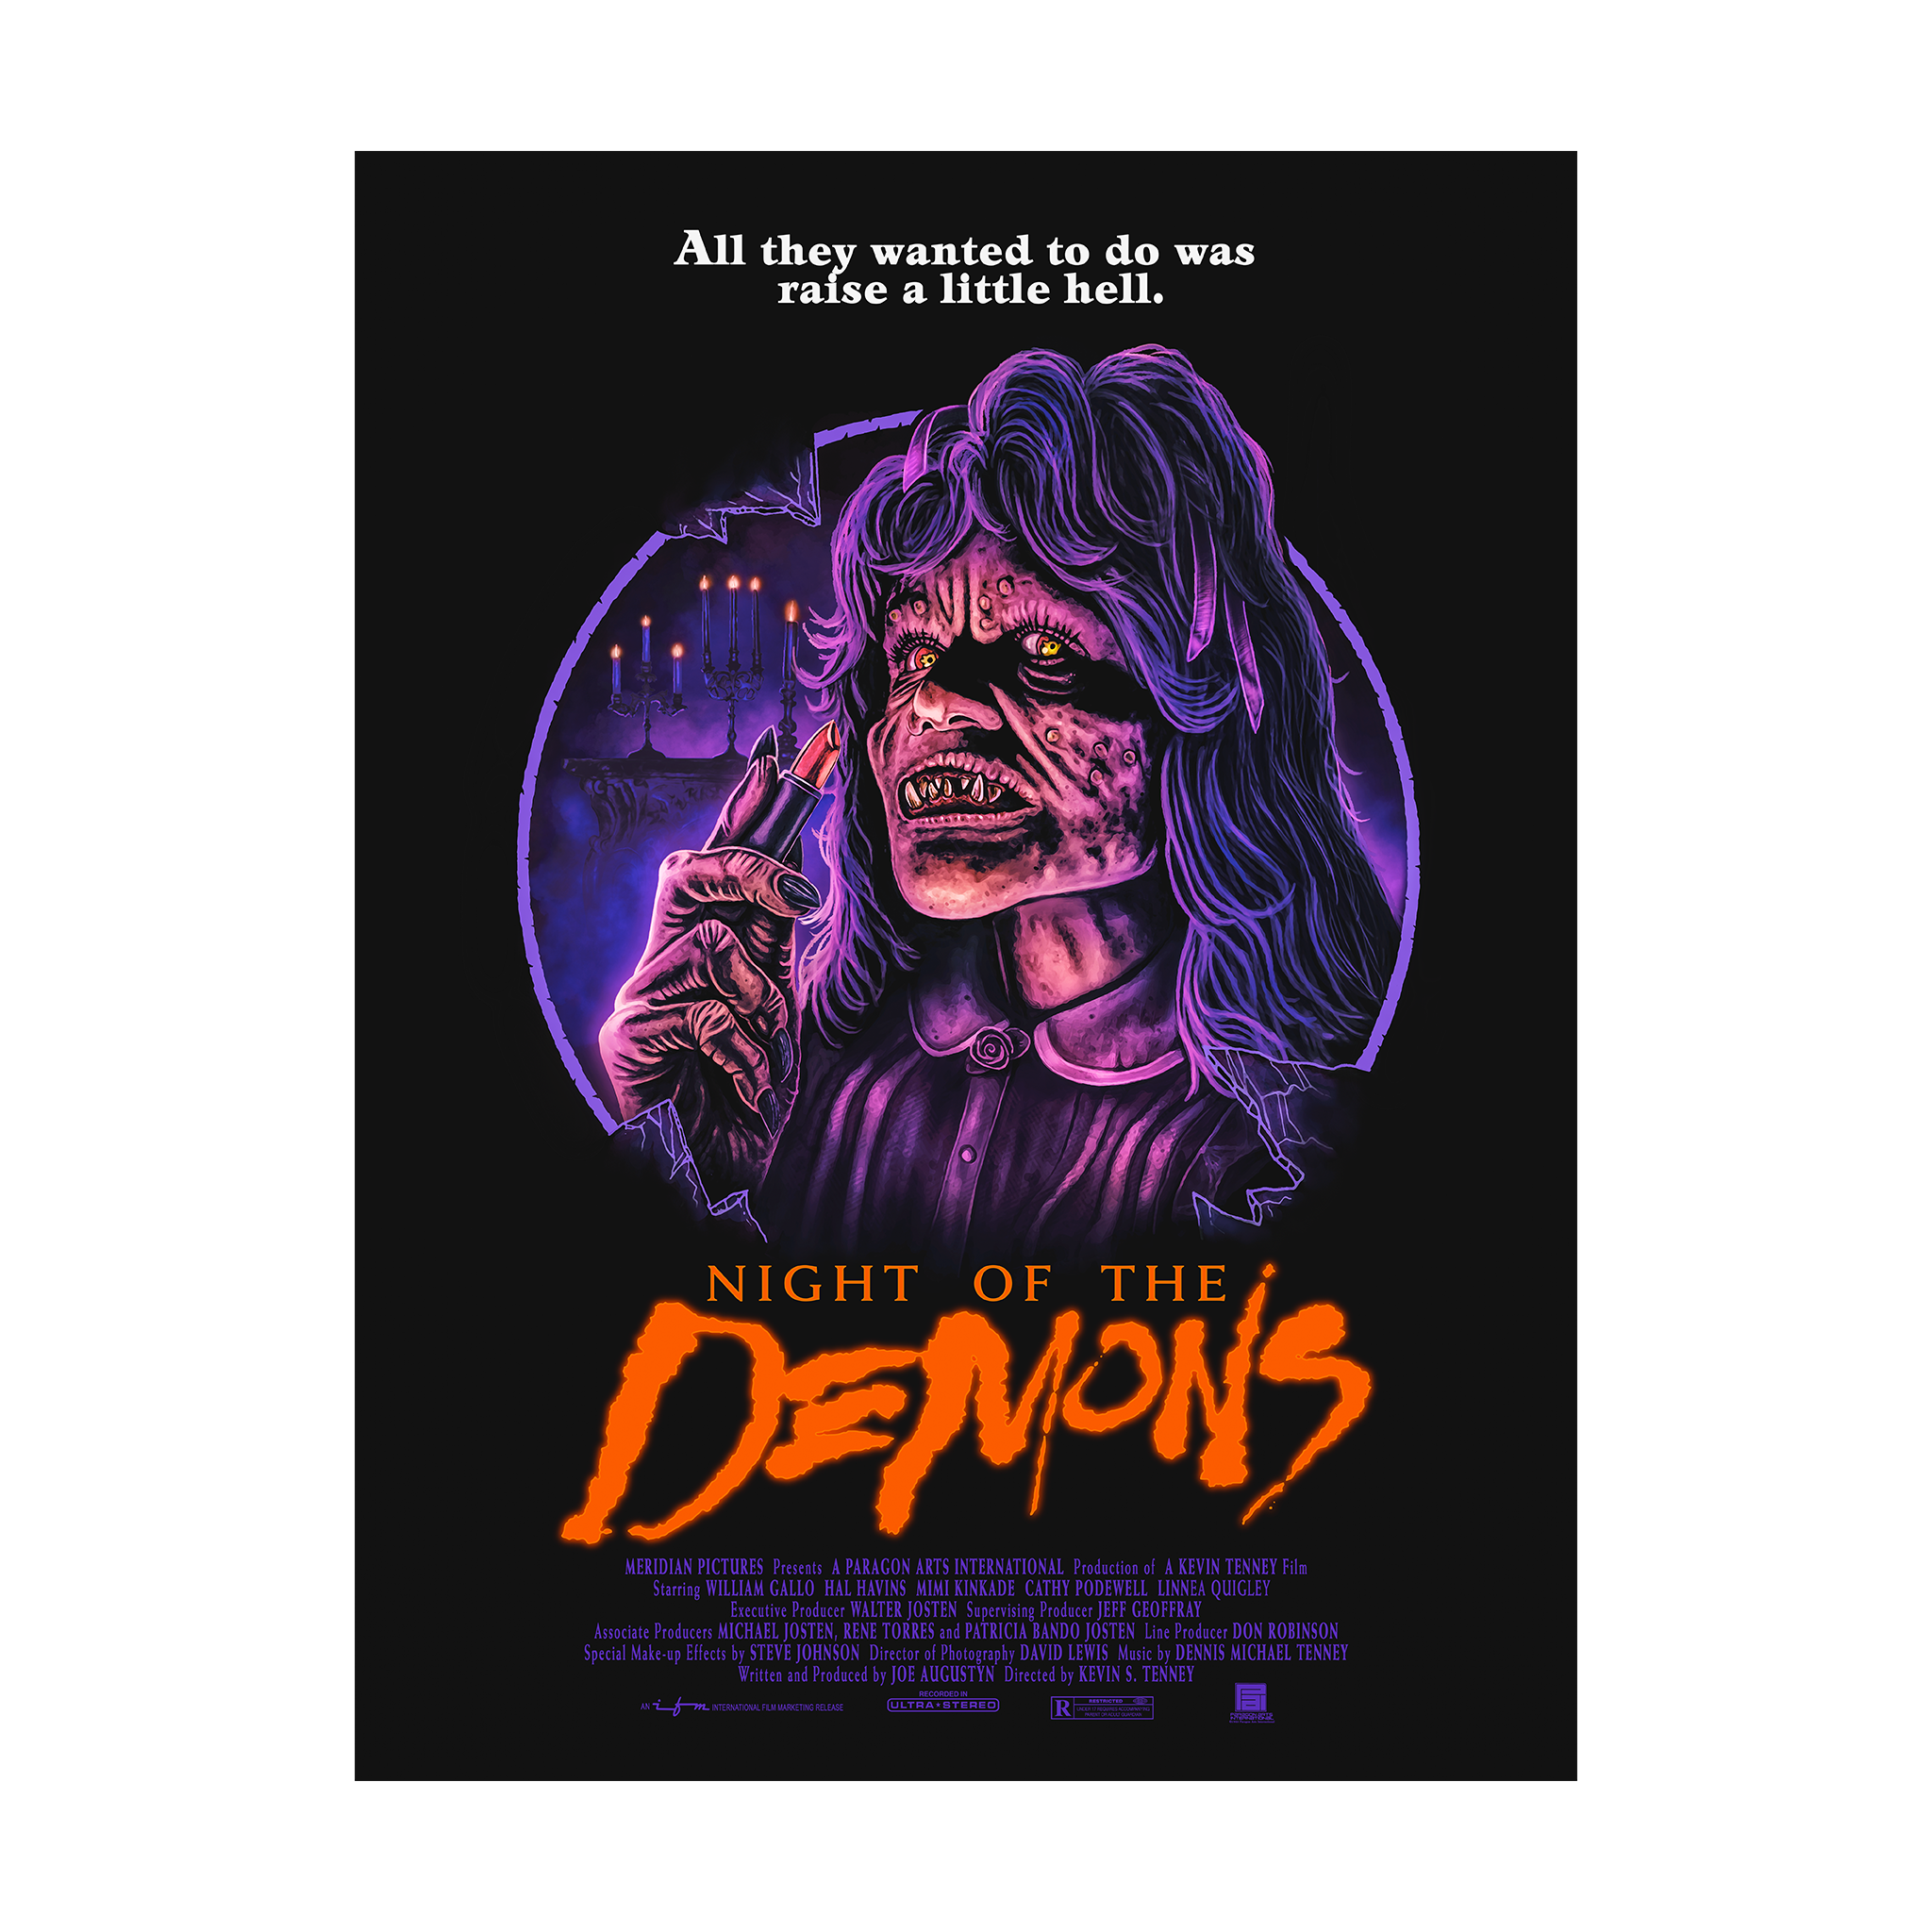 Night of the Demons: Suzanne Poster (18x24)